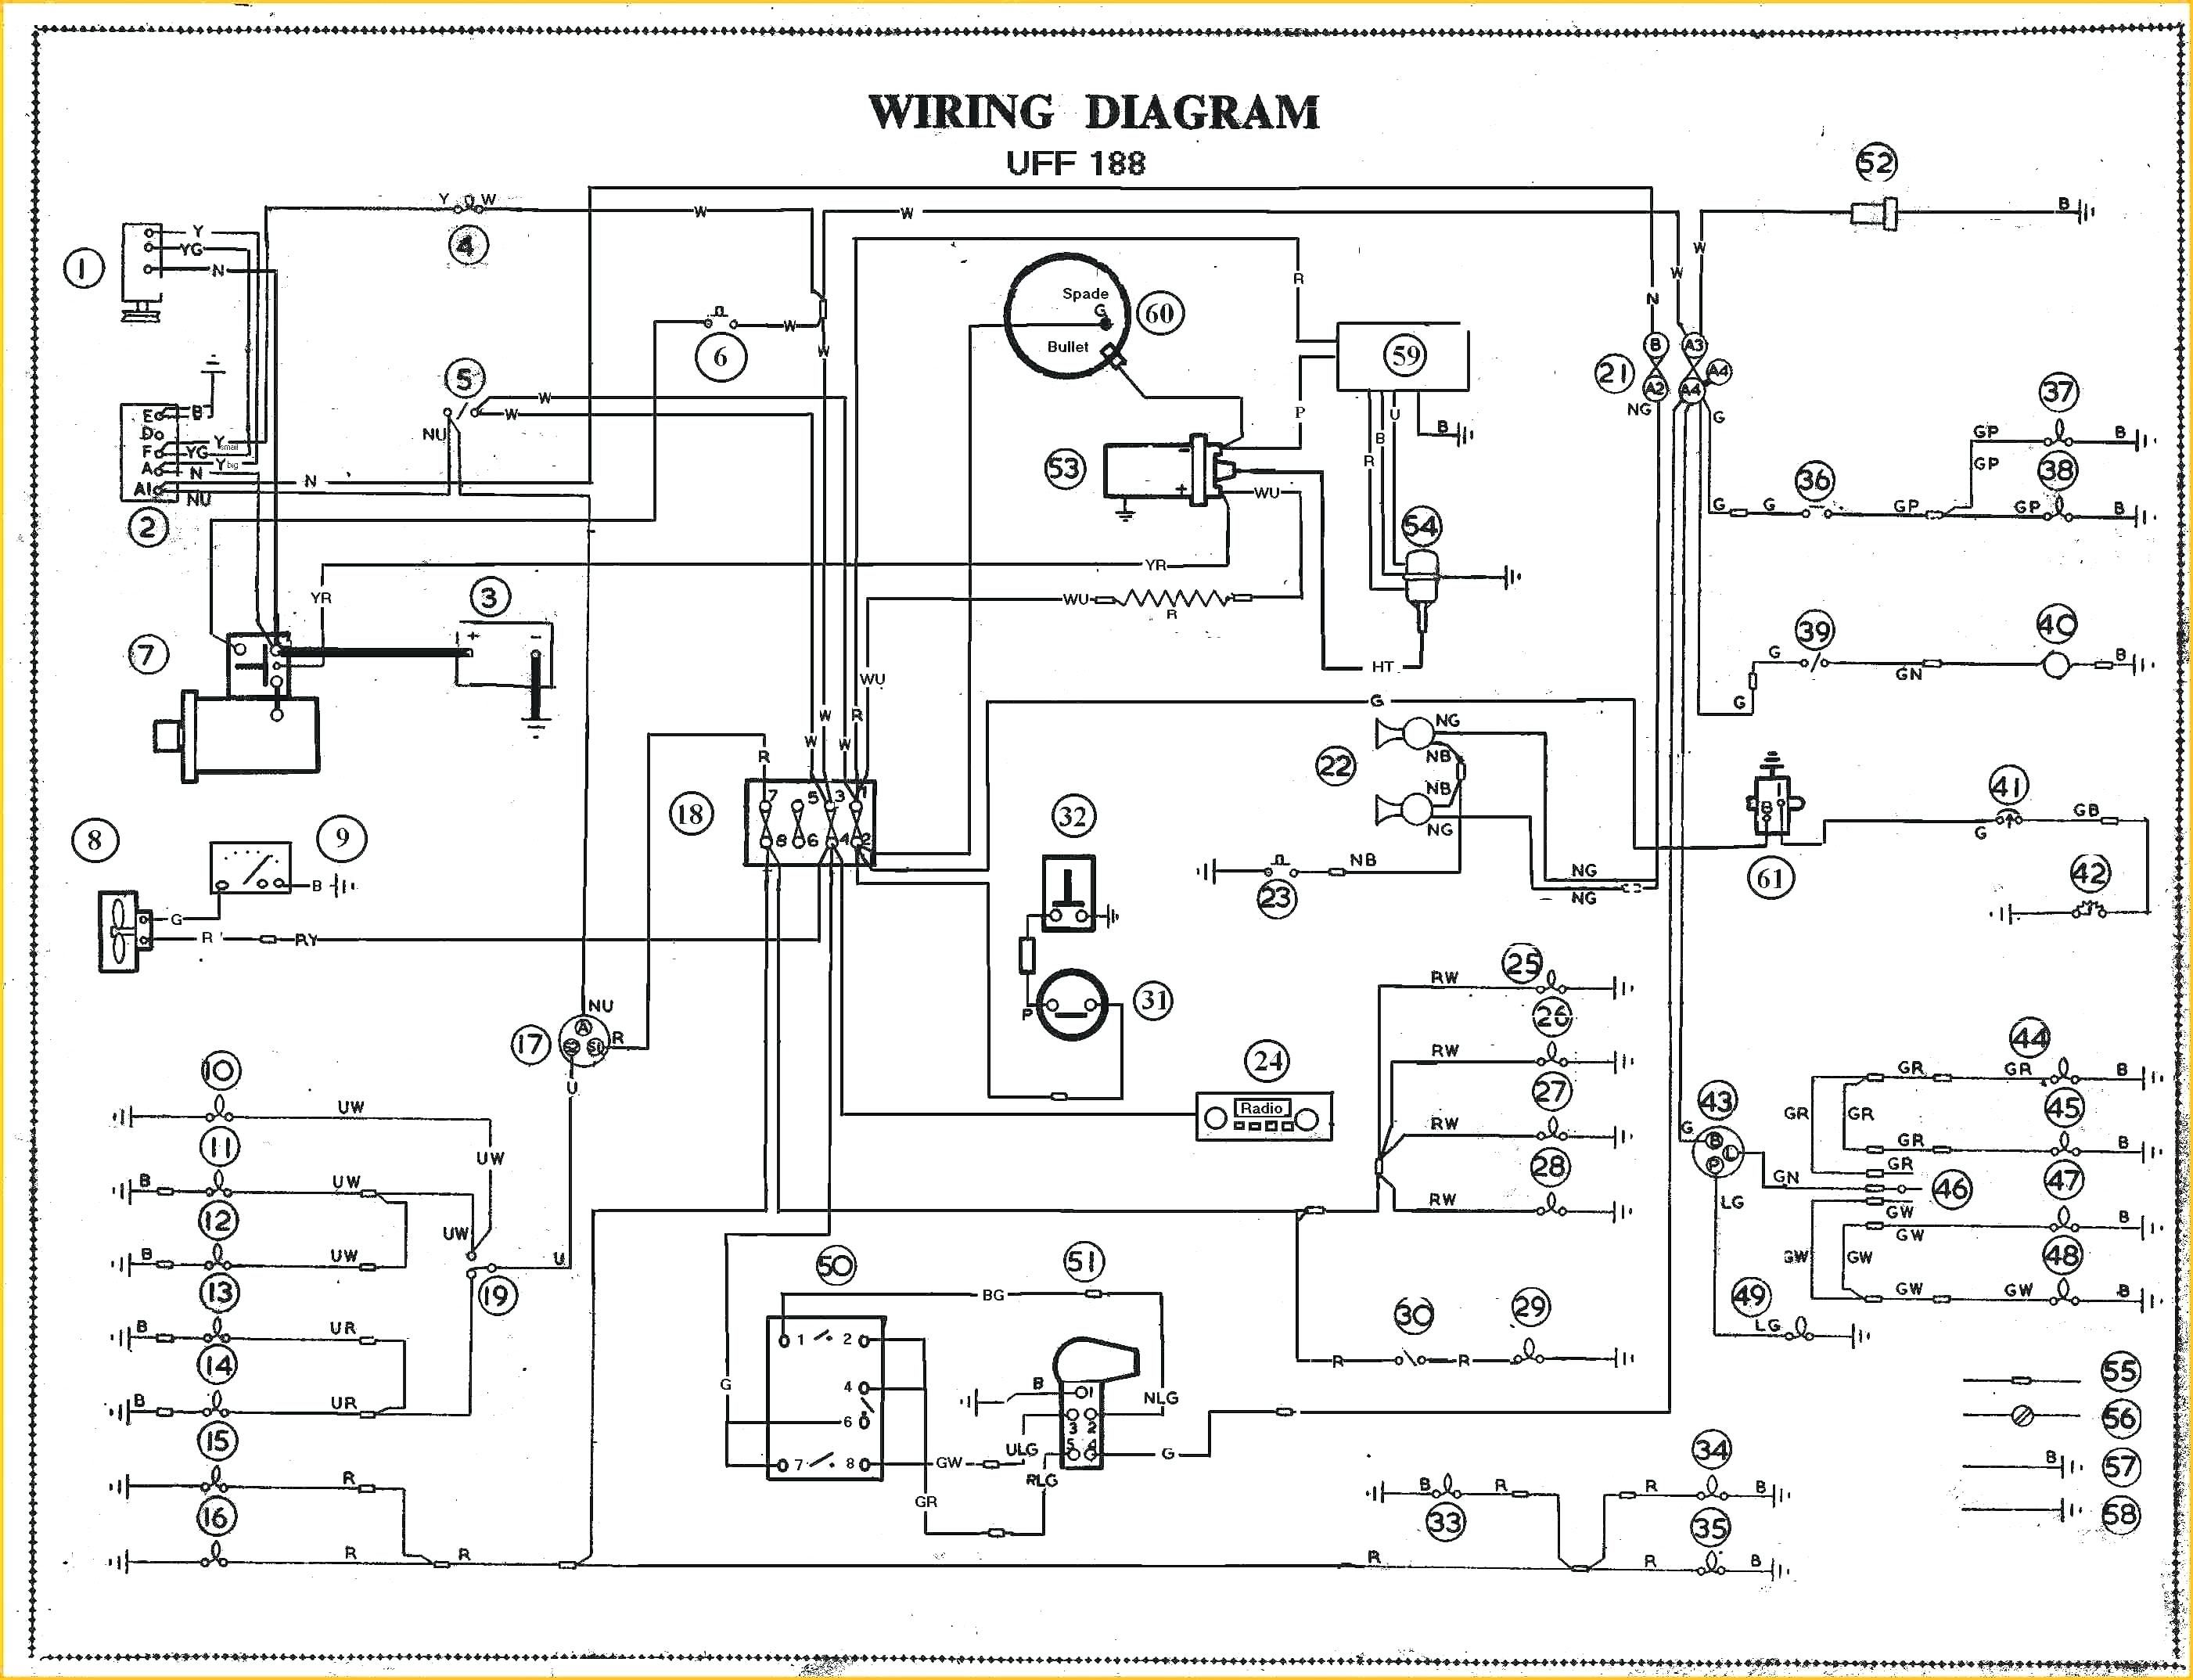 Basic Hvac Wiring Diagrams Schematics At Diagram Pdf | Diagram, Diagram  design, Hvac | Hvac Diagrams Schematics |  | Pinterest